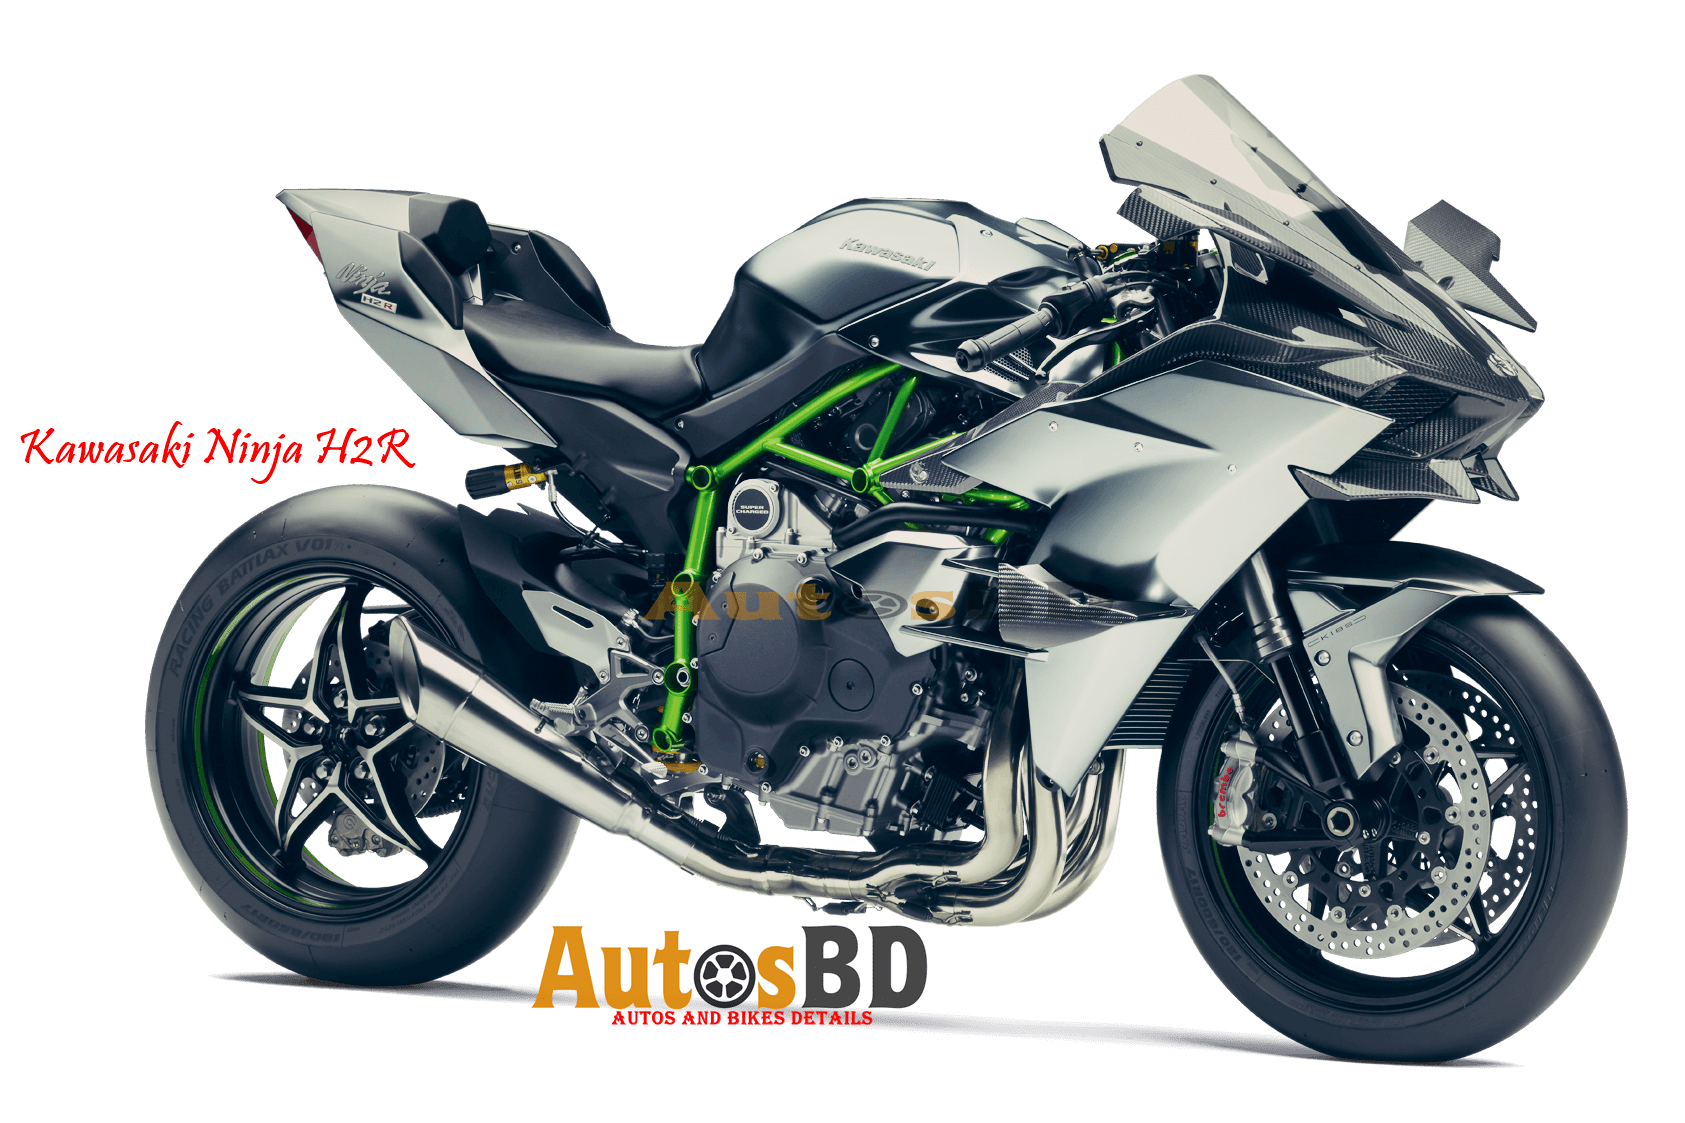 Kawasaki Ninja H2R Motorcycle Price in India